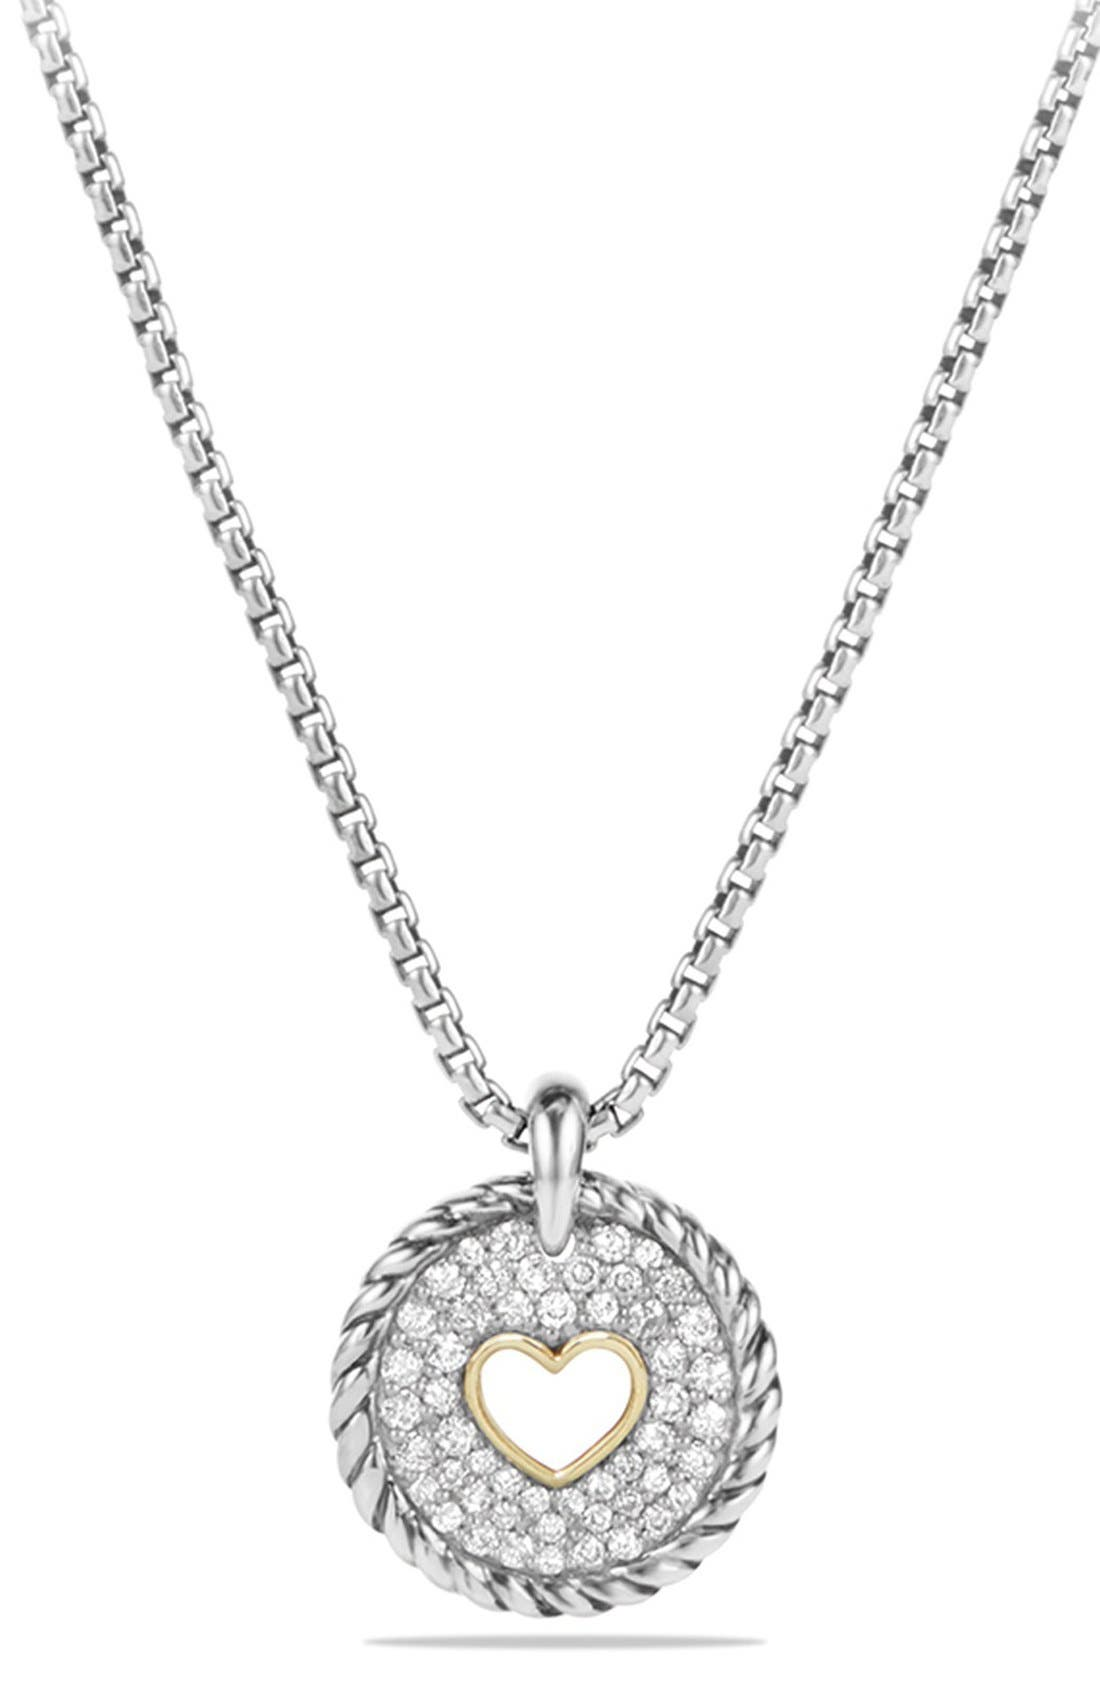 DAVID YURMAN 'Cable Collectibles' Heart Charm with Diamonds